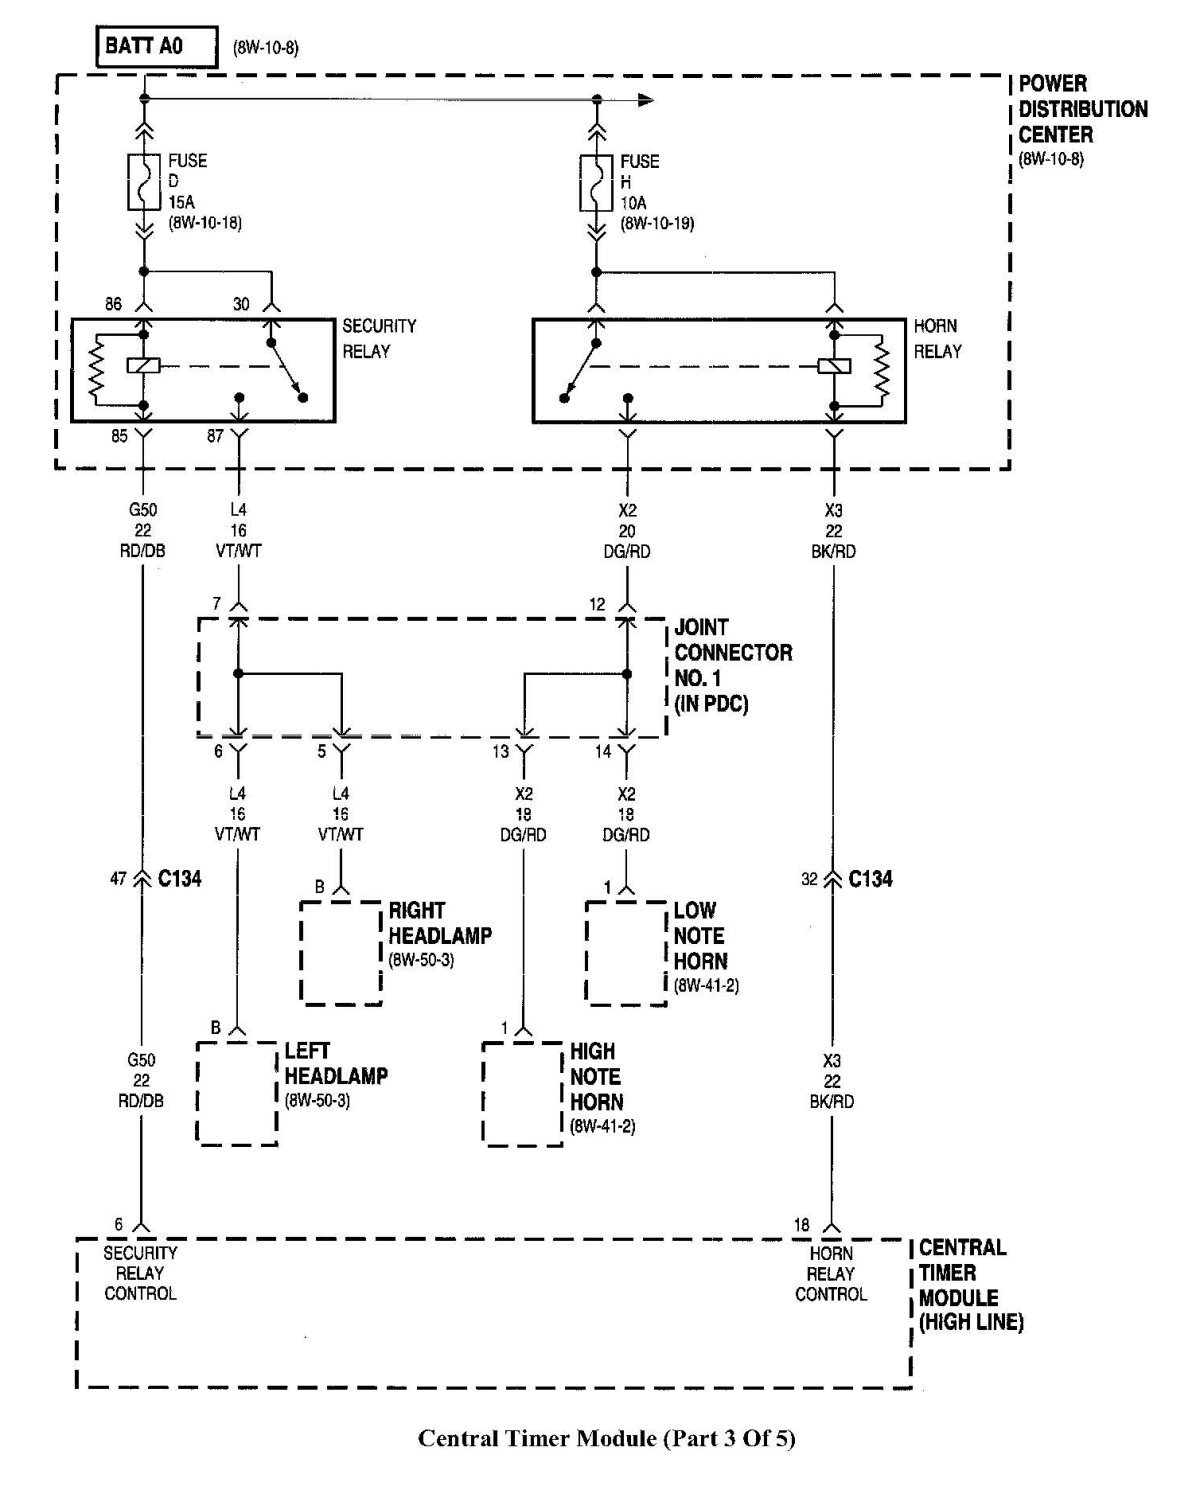 Wiring Diagram For 1998 Dodge Ram 3500 - Wiring Diagrams Hubs - 98 Dodge Ram Trailer Wiring Diagram